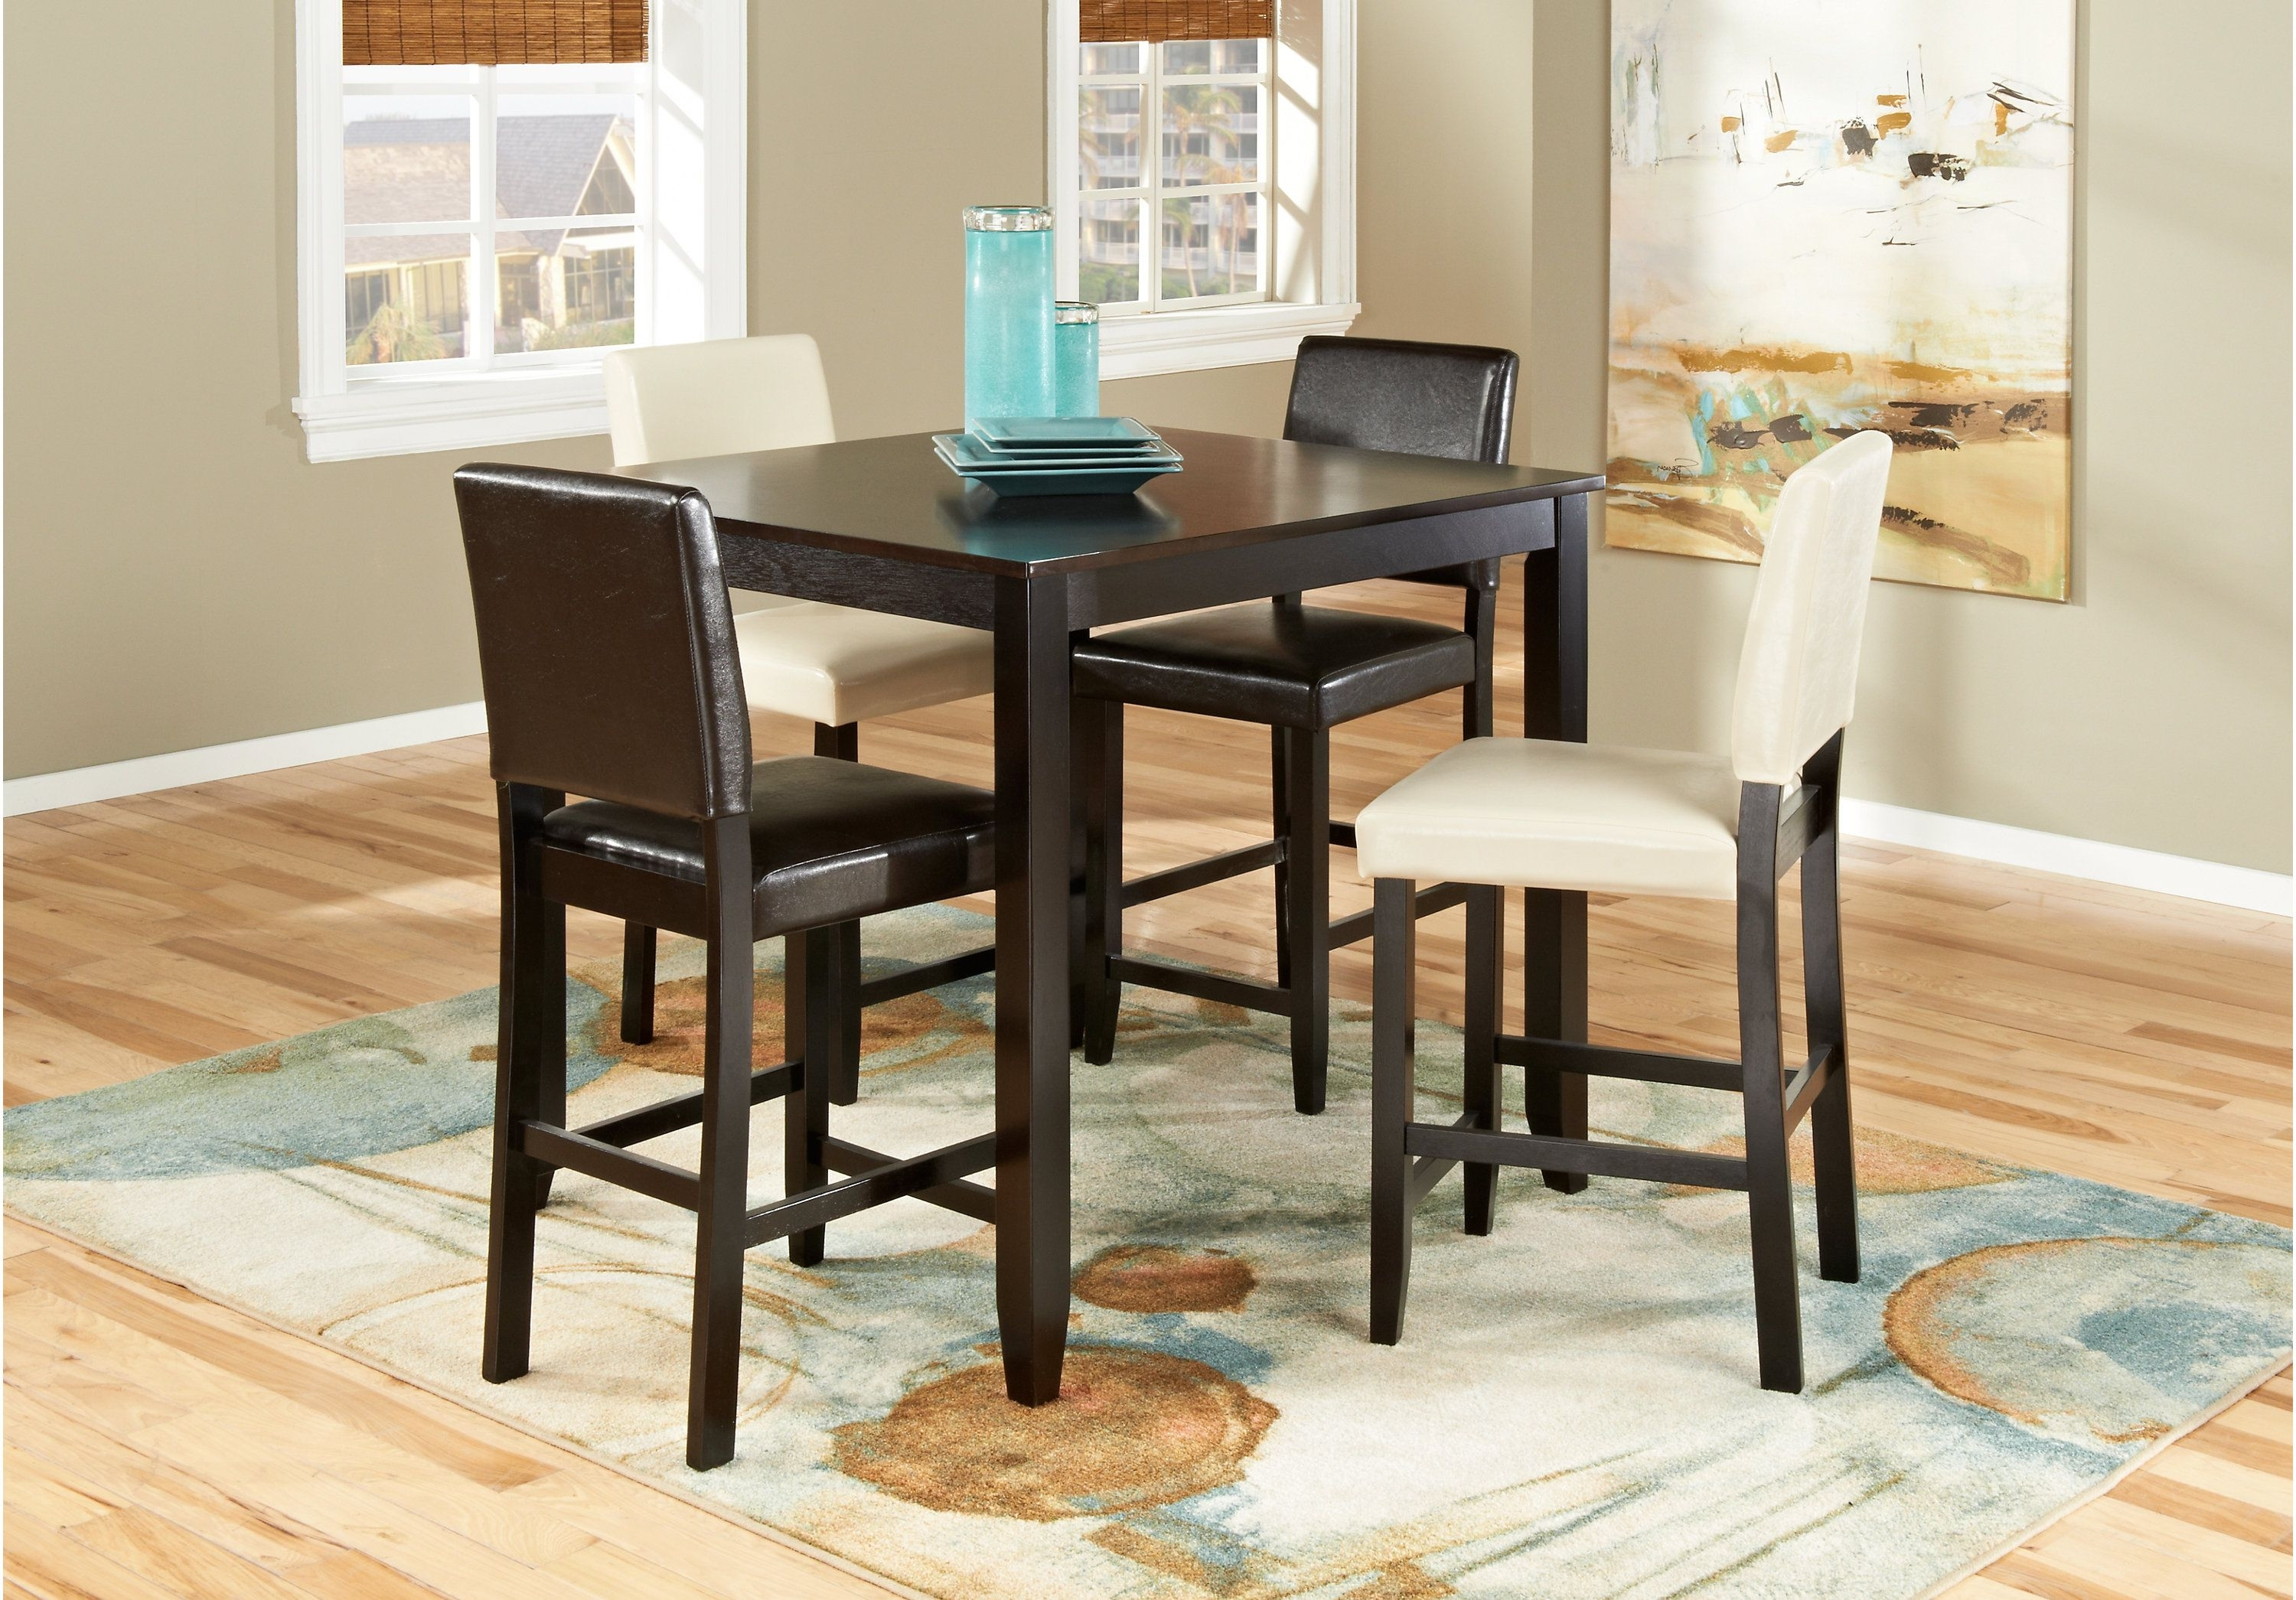 Sunset View Espresso 5 Pc Counter Height Dining Room W Brown Throughout Most Current Pierce 5 Piece Counter Sets (View 20 of 25)